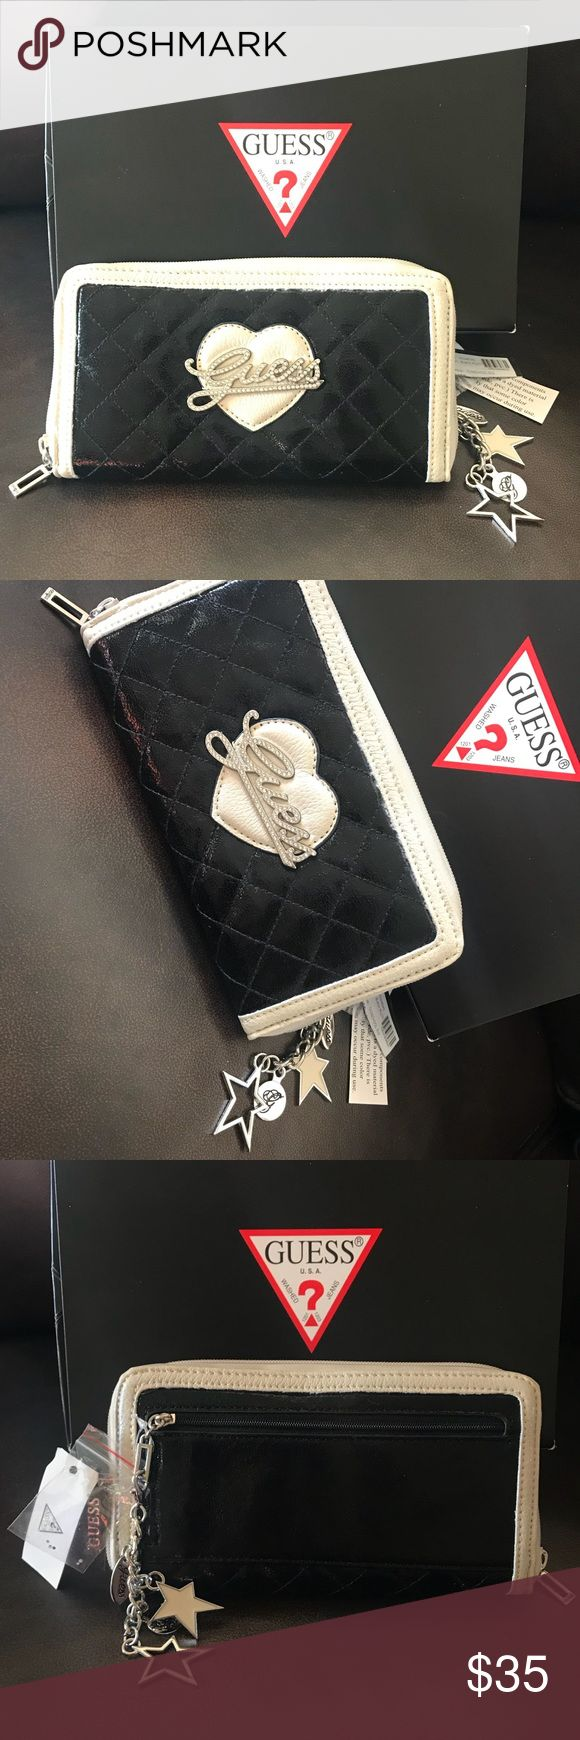 Brand New GUESS Black Patent Leather Zip Wallet Brand New GUESS Black Patent Leather Zip Wallet, made up with Beige Leather trim. Guess Logo piece attached on front with gems on beige leather heart. Back has length size zipper with Guess Stars, & oval Charms hanging. Inside made up of Tan Leather, 8 credit card pockets, middle zip pocket, & 6 full length size slots. Box, original ticketing, stuffing & 6 replaceable gems are INCLUDED with purchase. Guess Bags Wallets